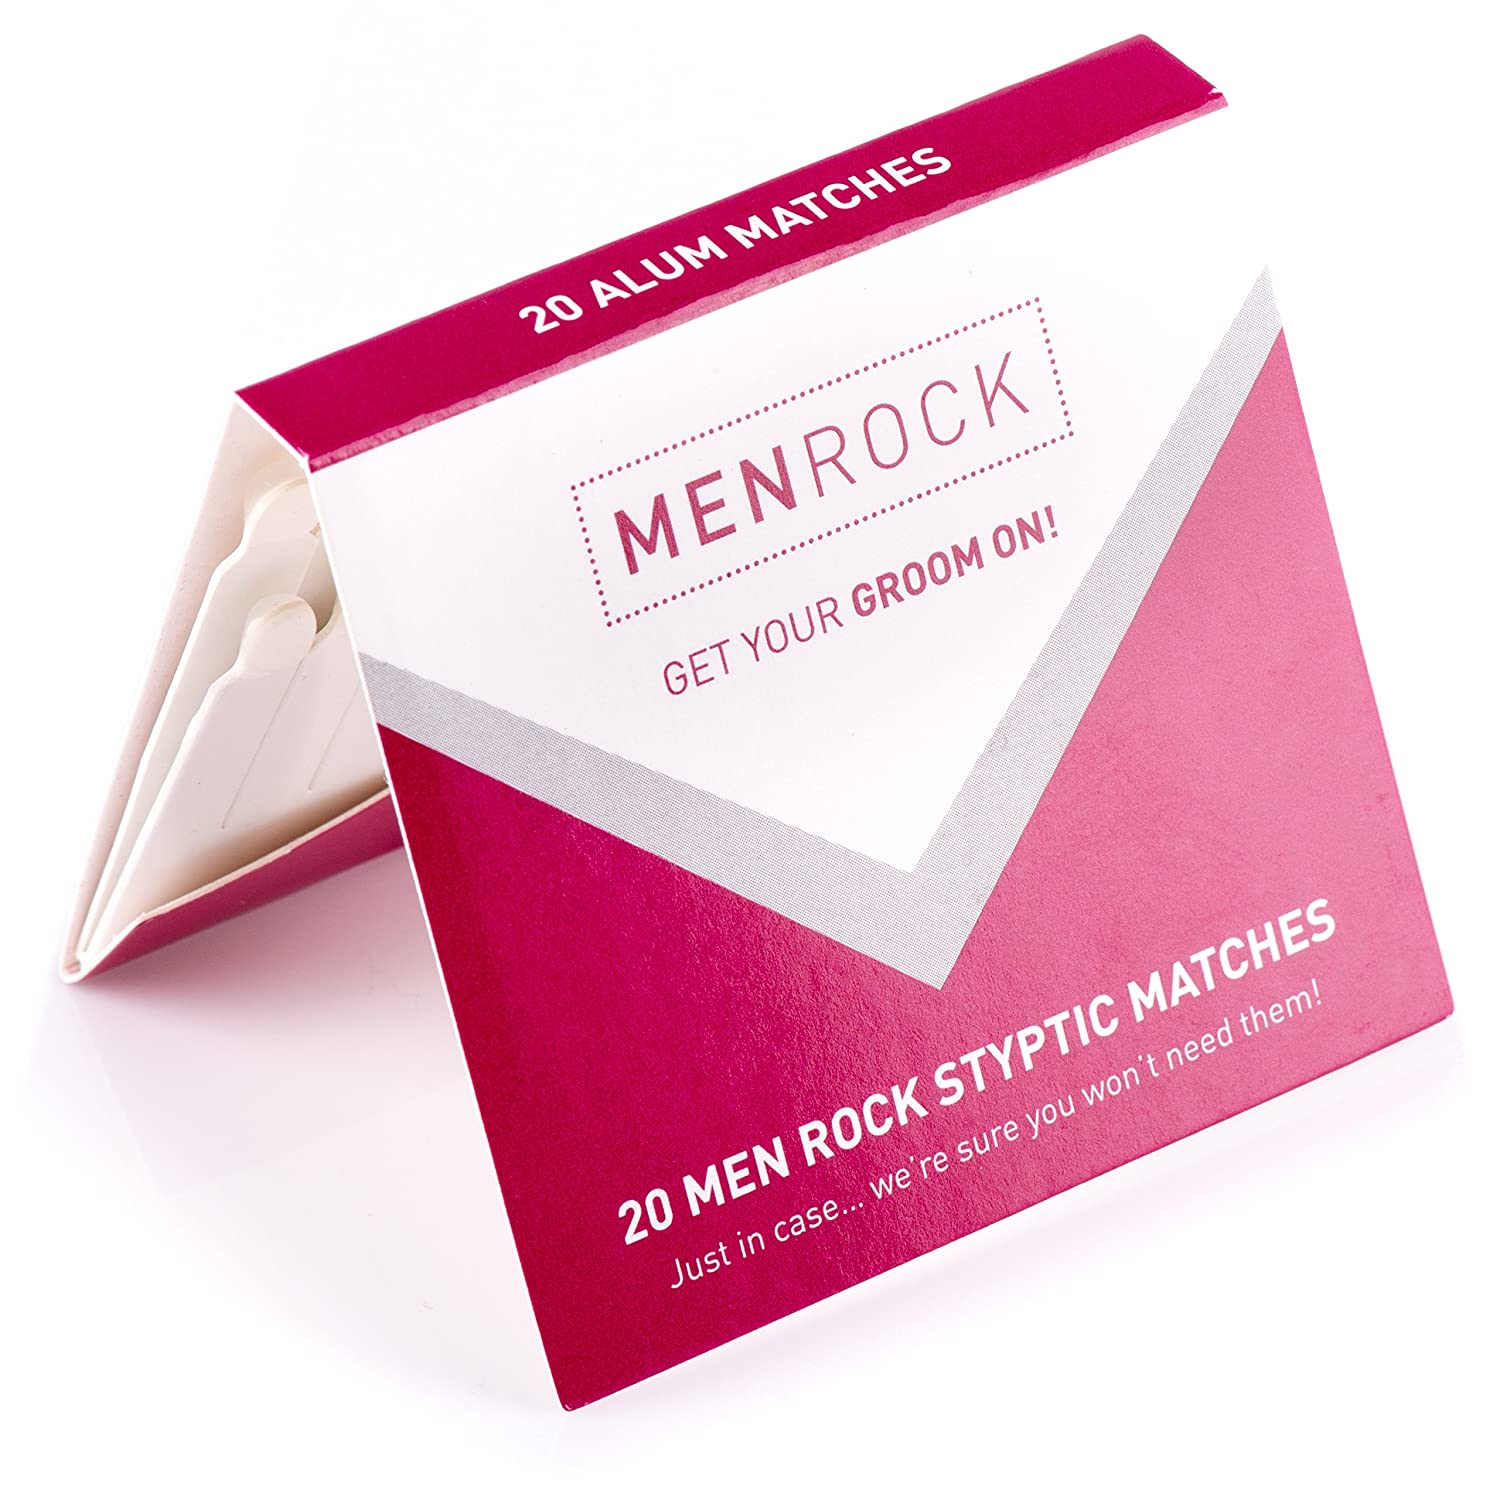 Men Rock Styptic Matches - Pack of 20 MRSTM